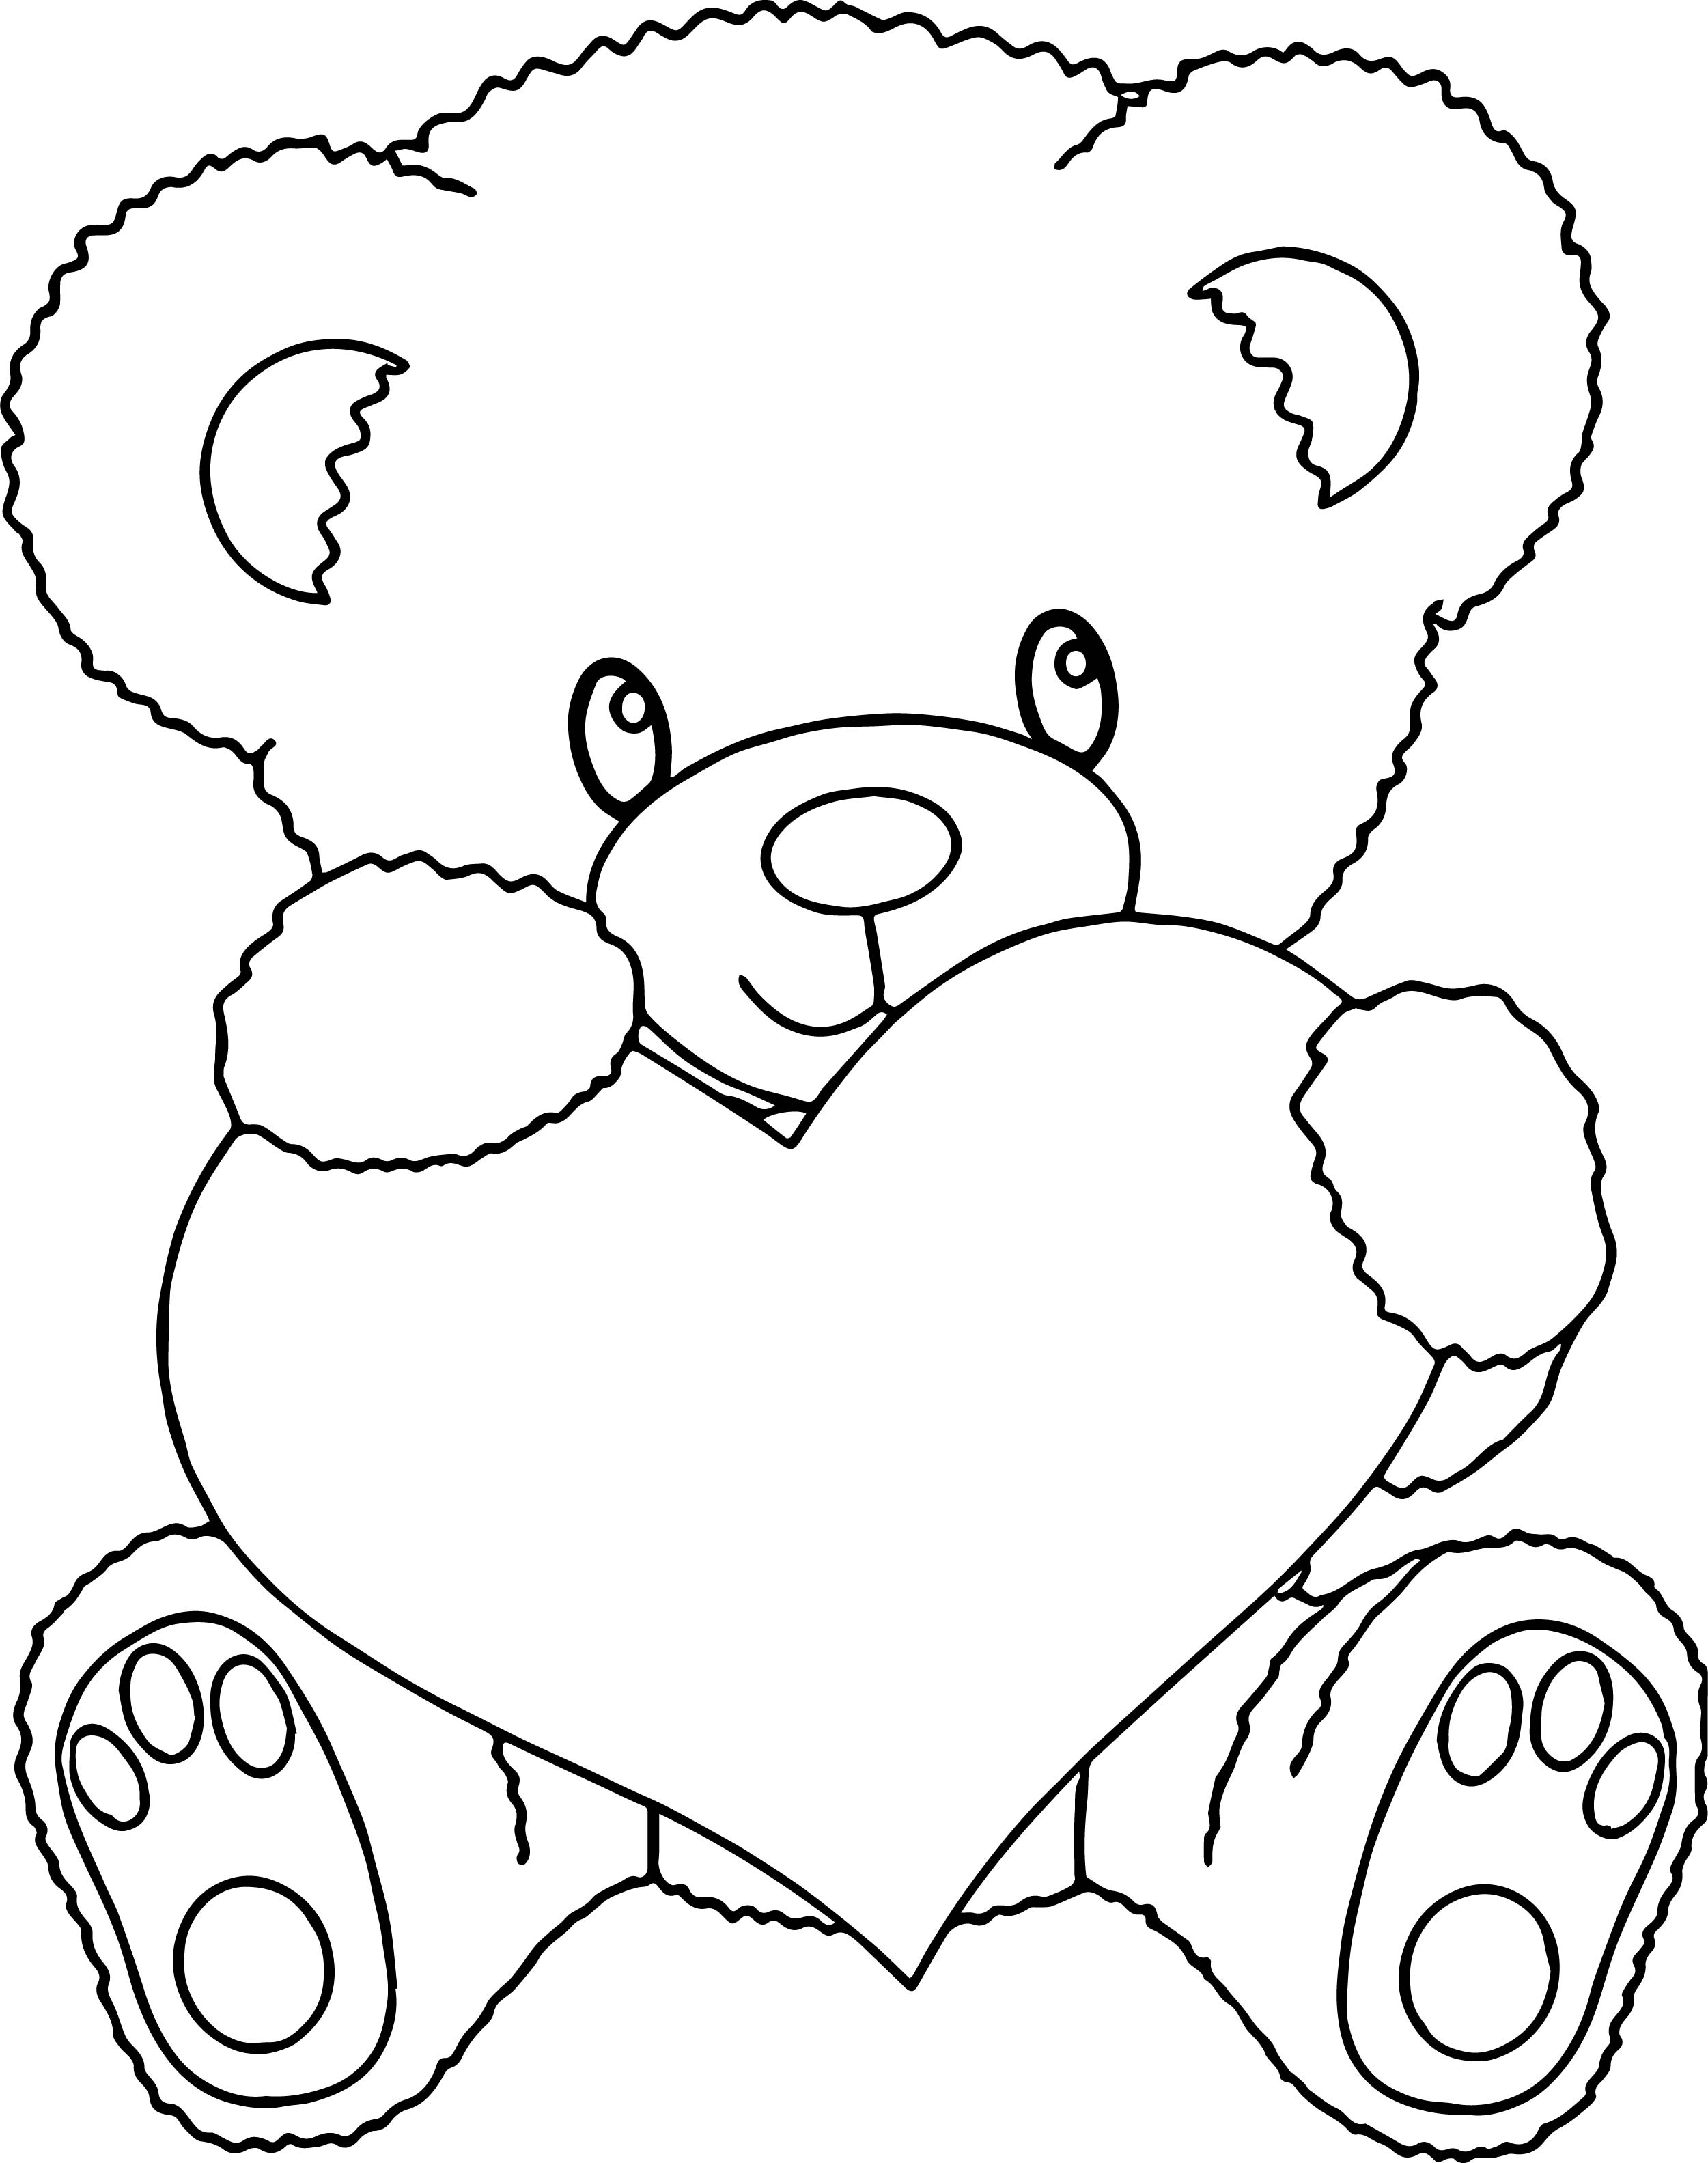 Teddy Bear With Heart Coloring Pages | Home Design Plan